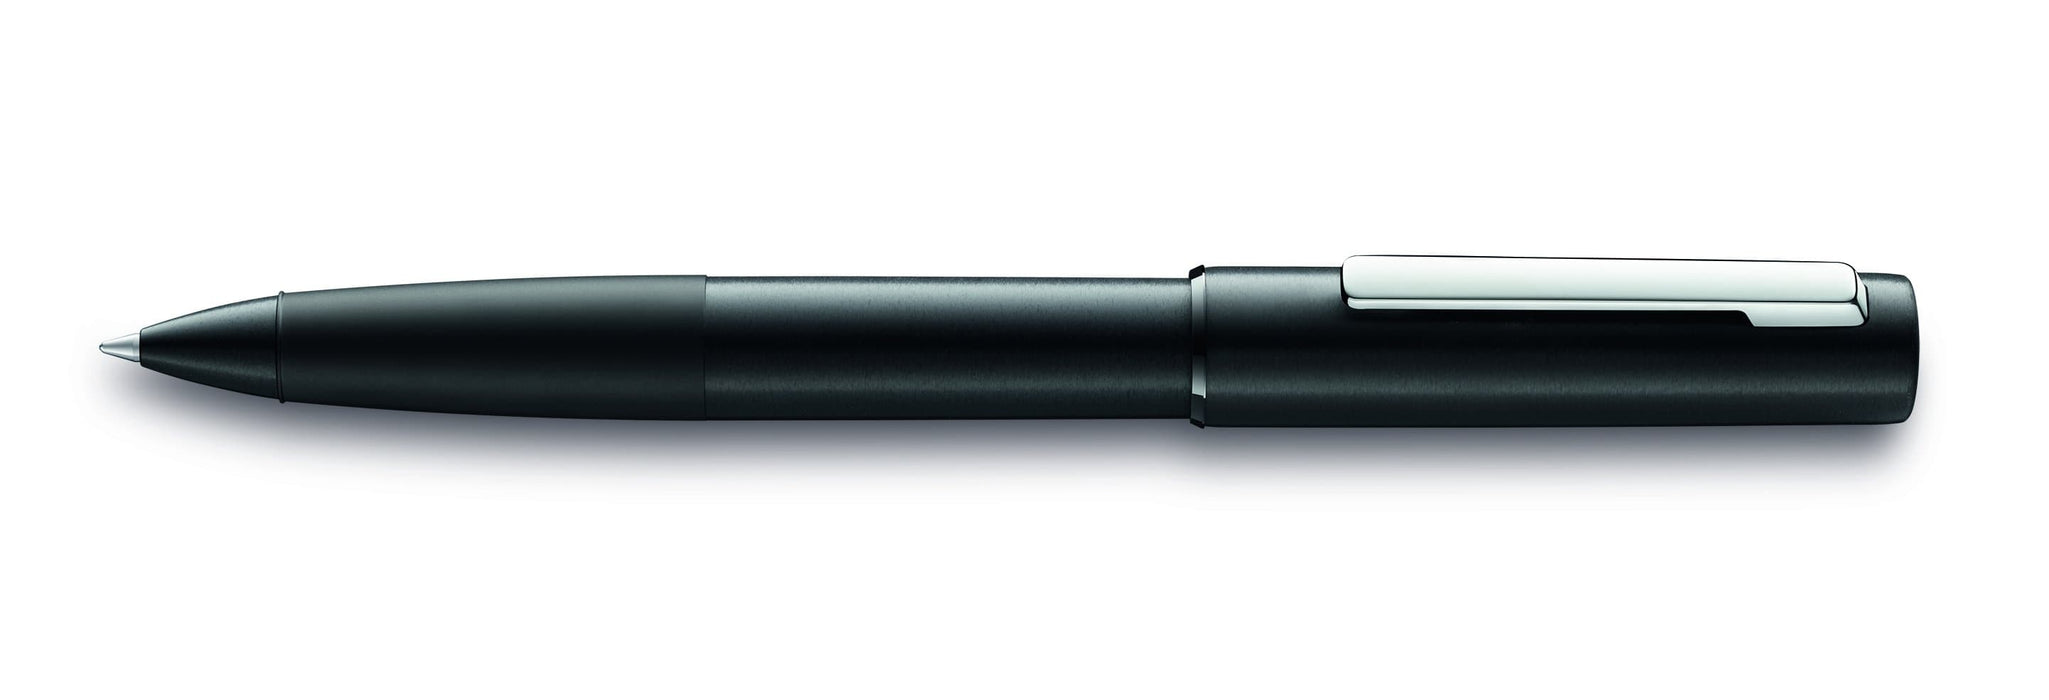 Aion Rollerball Pen - Blesket Canada